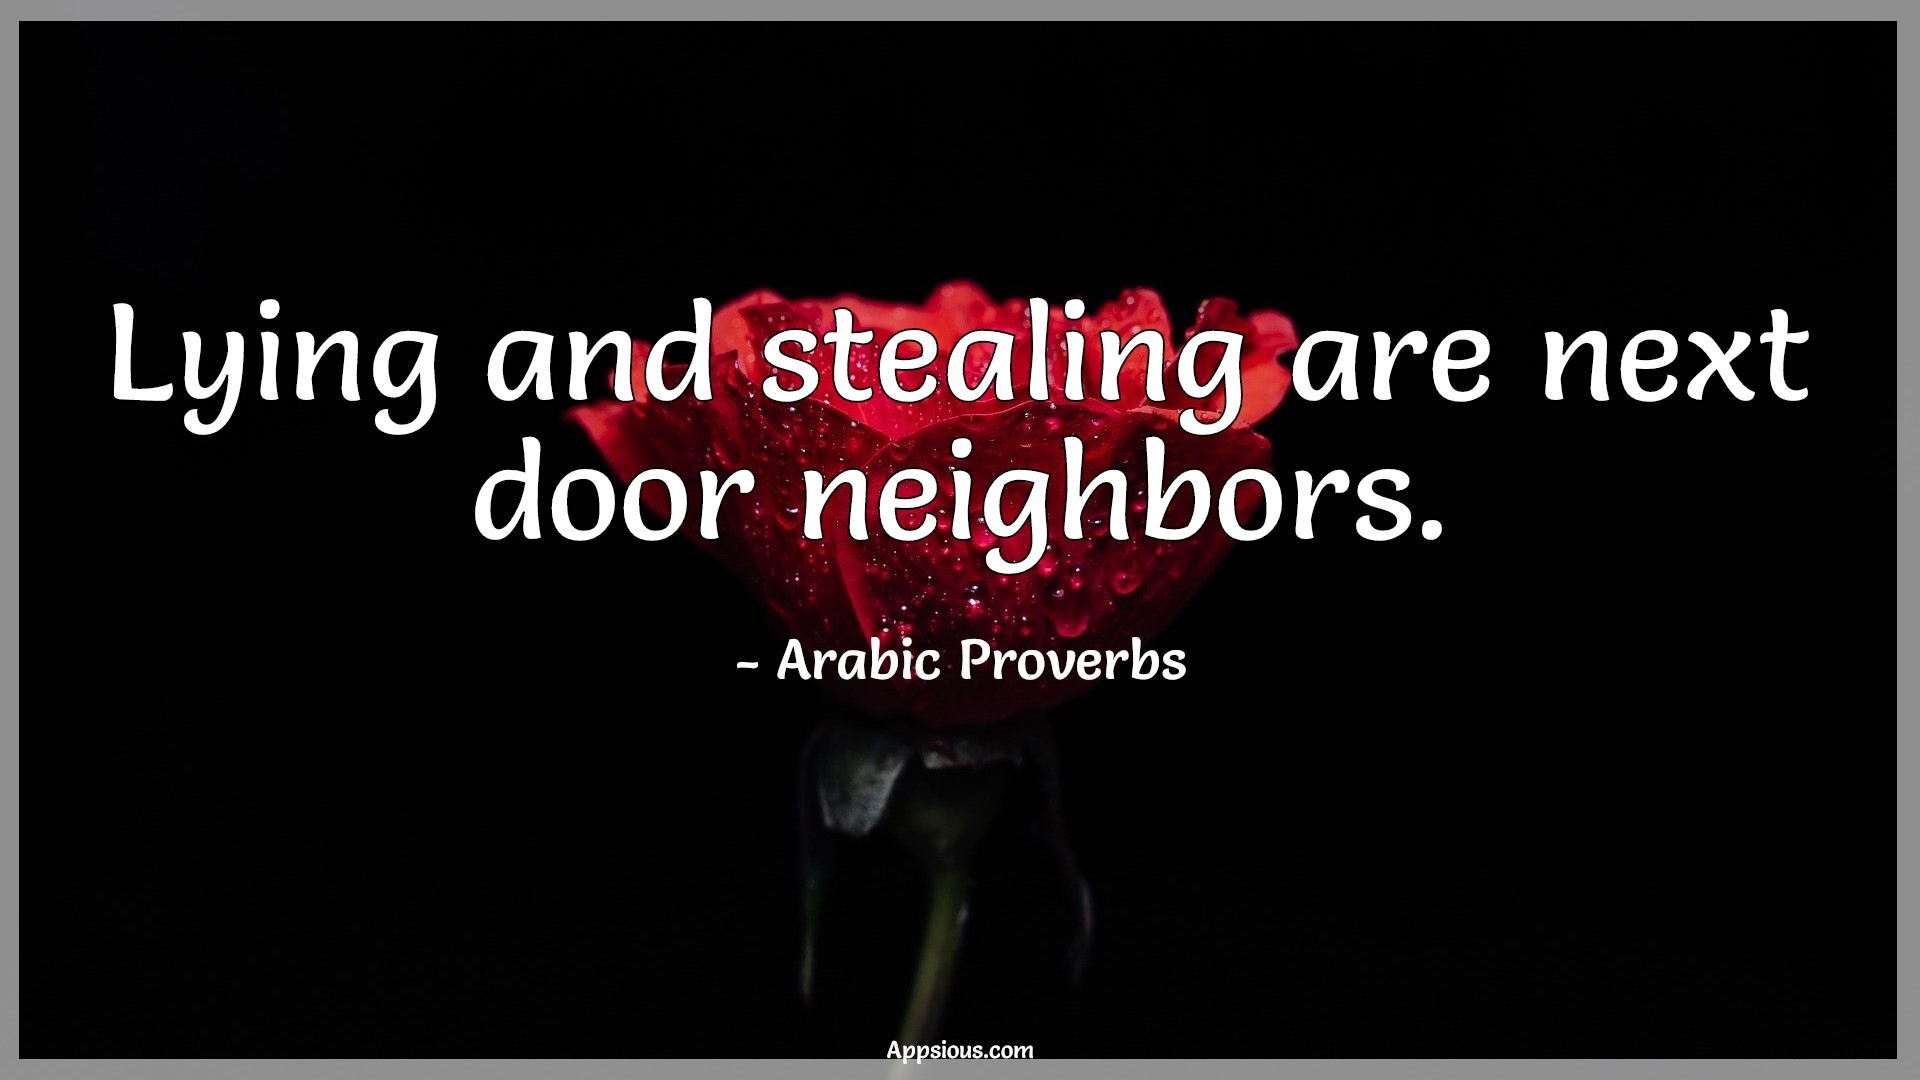 Lying and stealing are next door neighbors.